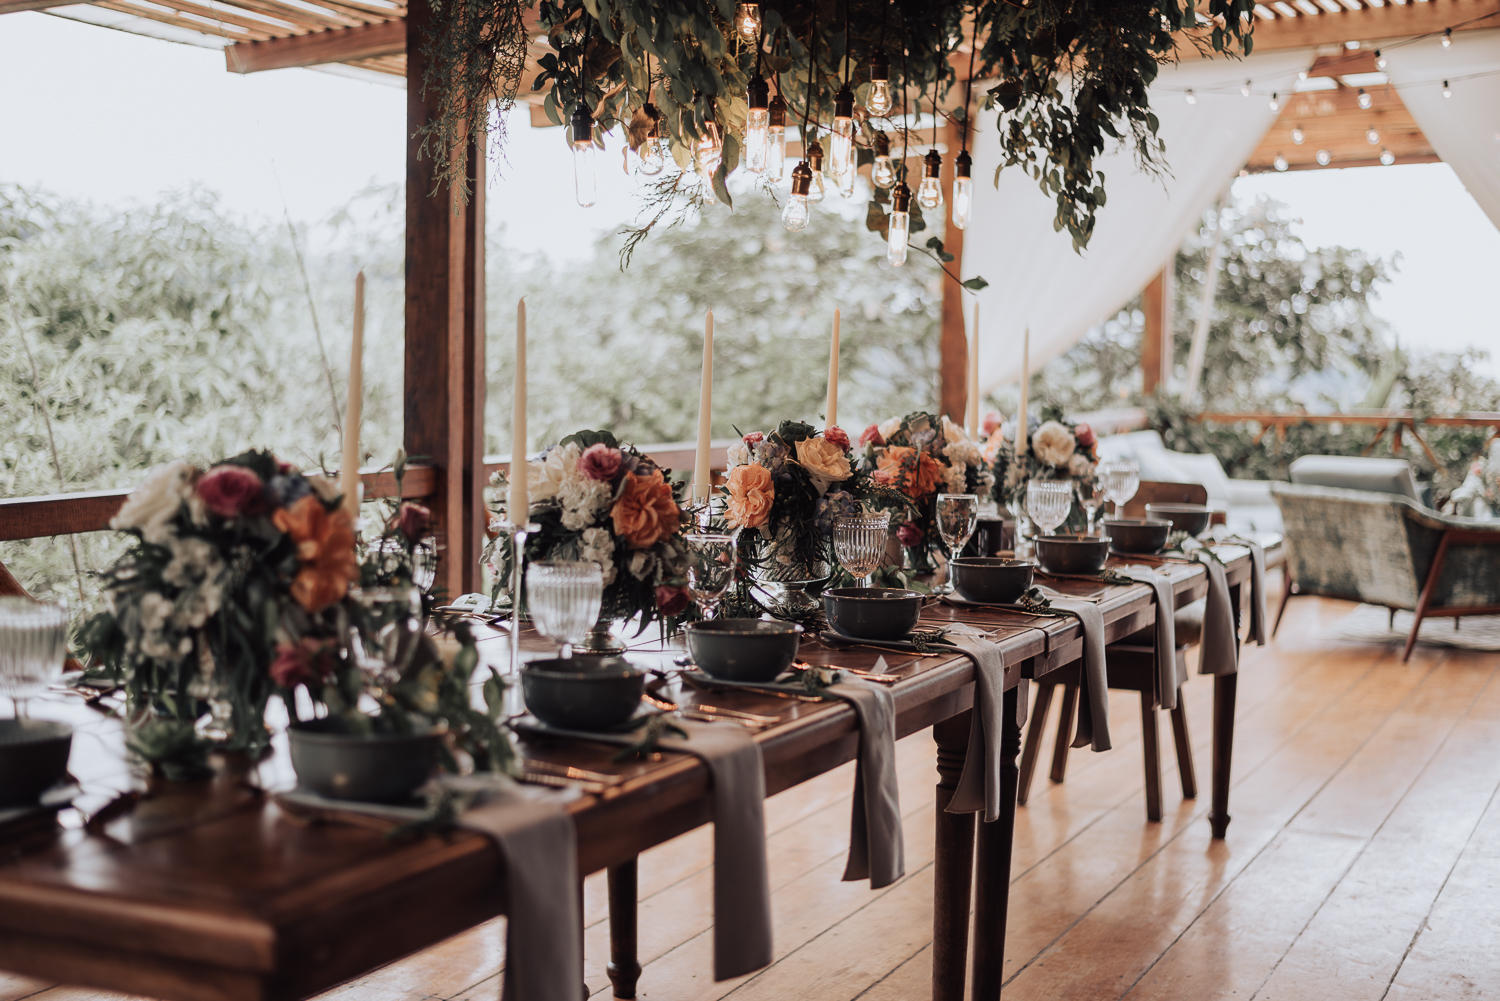 The wedding tablscape was done in greys and peach tones, with tall candles, lush florals and an Edison bulb and greenery chandelier